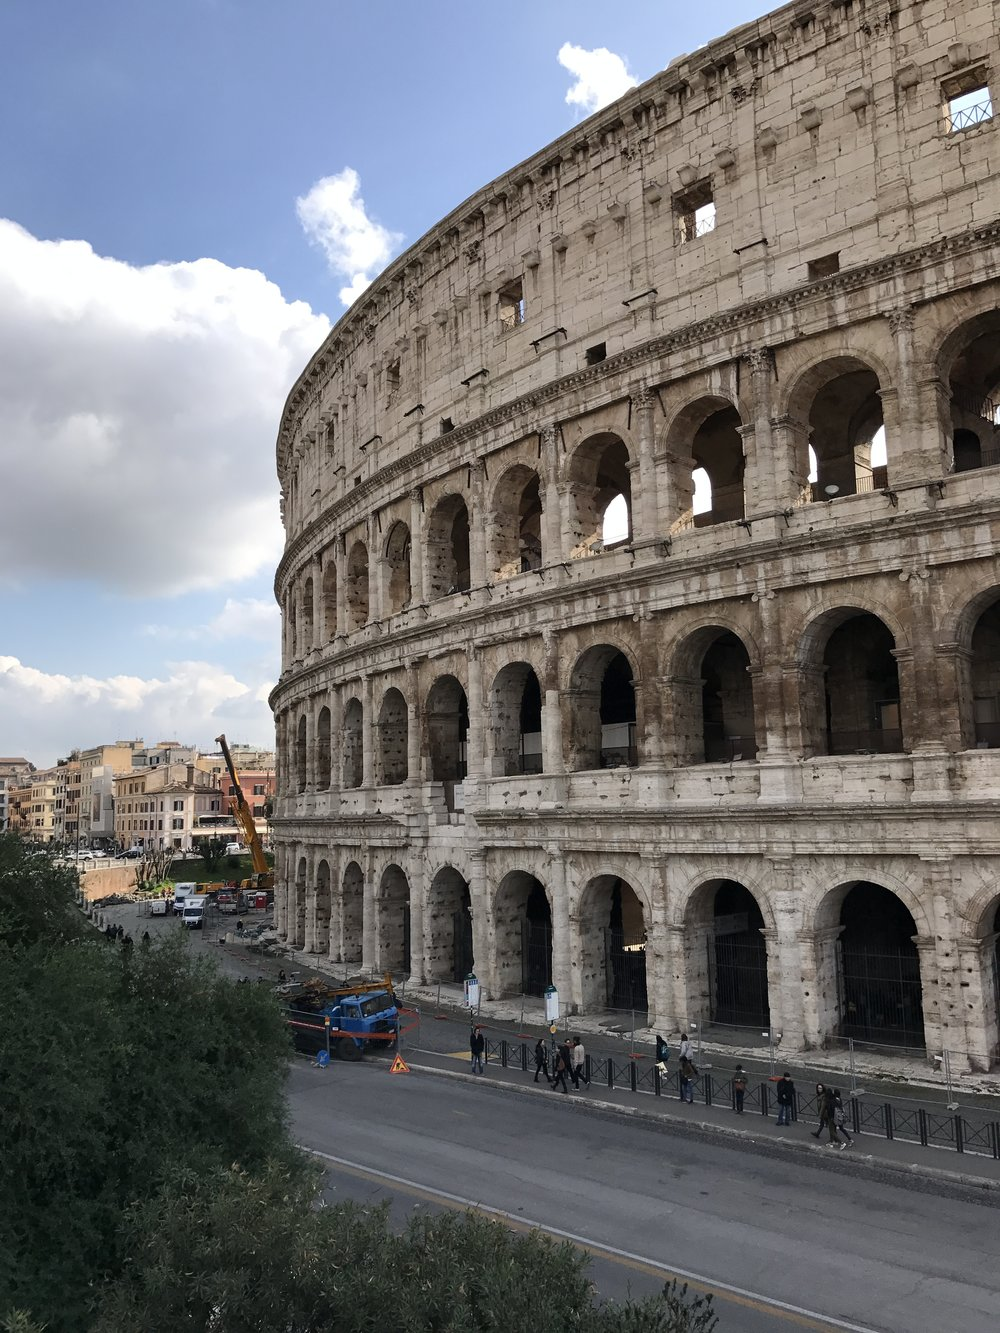 Ah Roma, some believe it to be the heart of italy. they say all roads lead to rome! join us as we unravel its secrets for you. total rome IMMERSION tour.